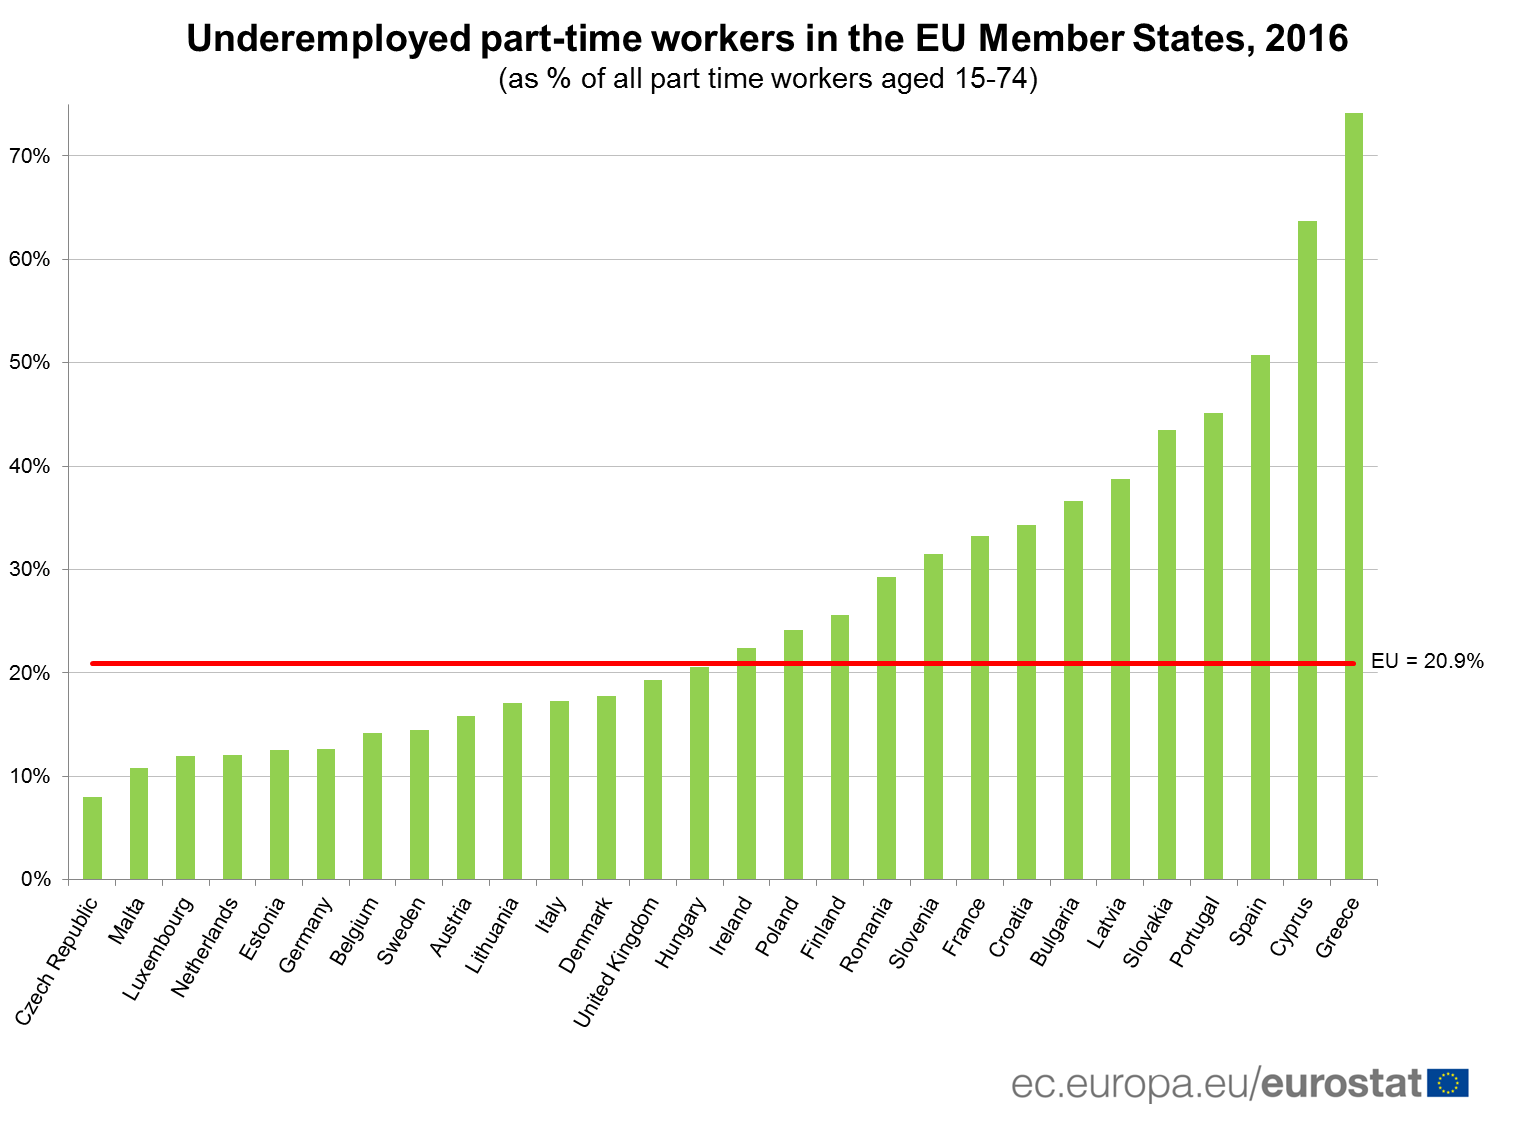 Underemployed part-time workers in the EU, 2016